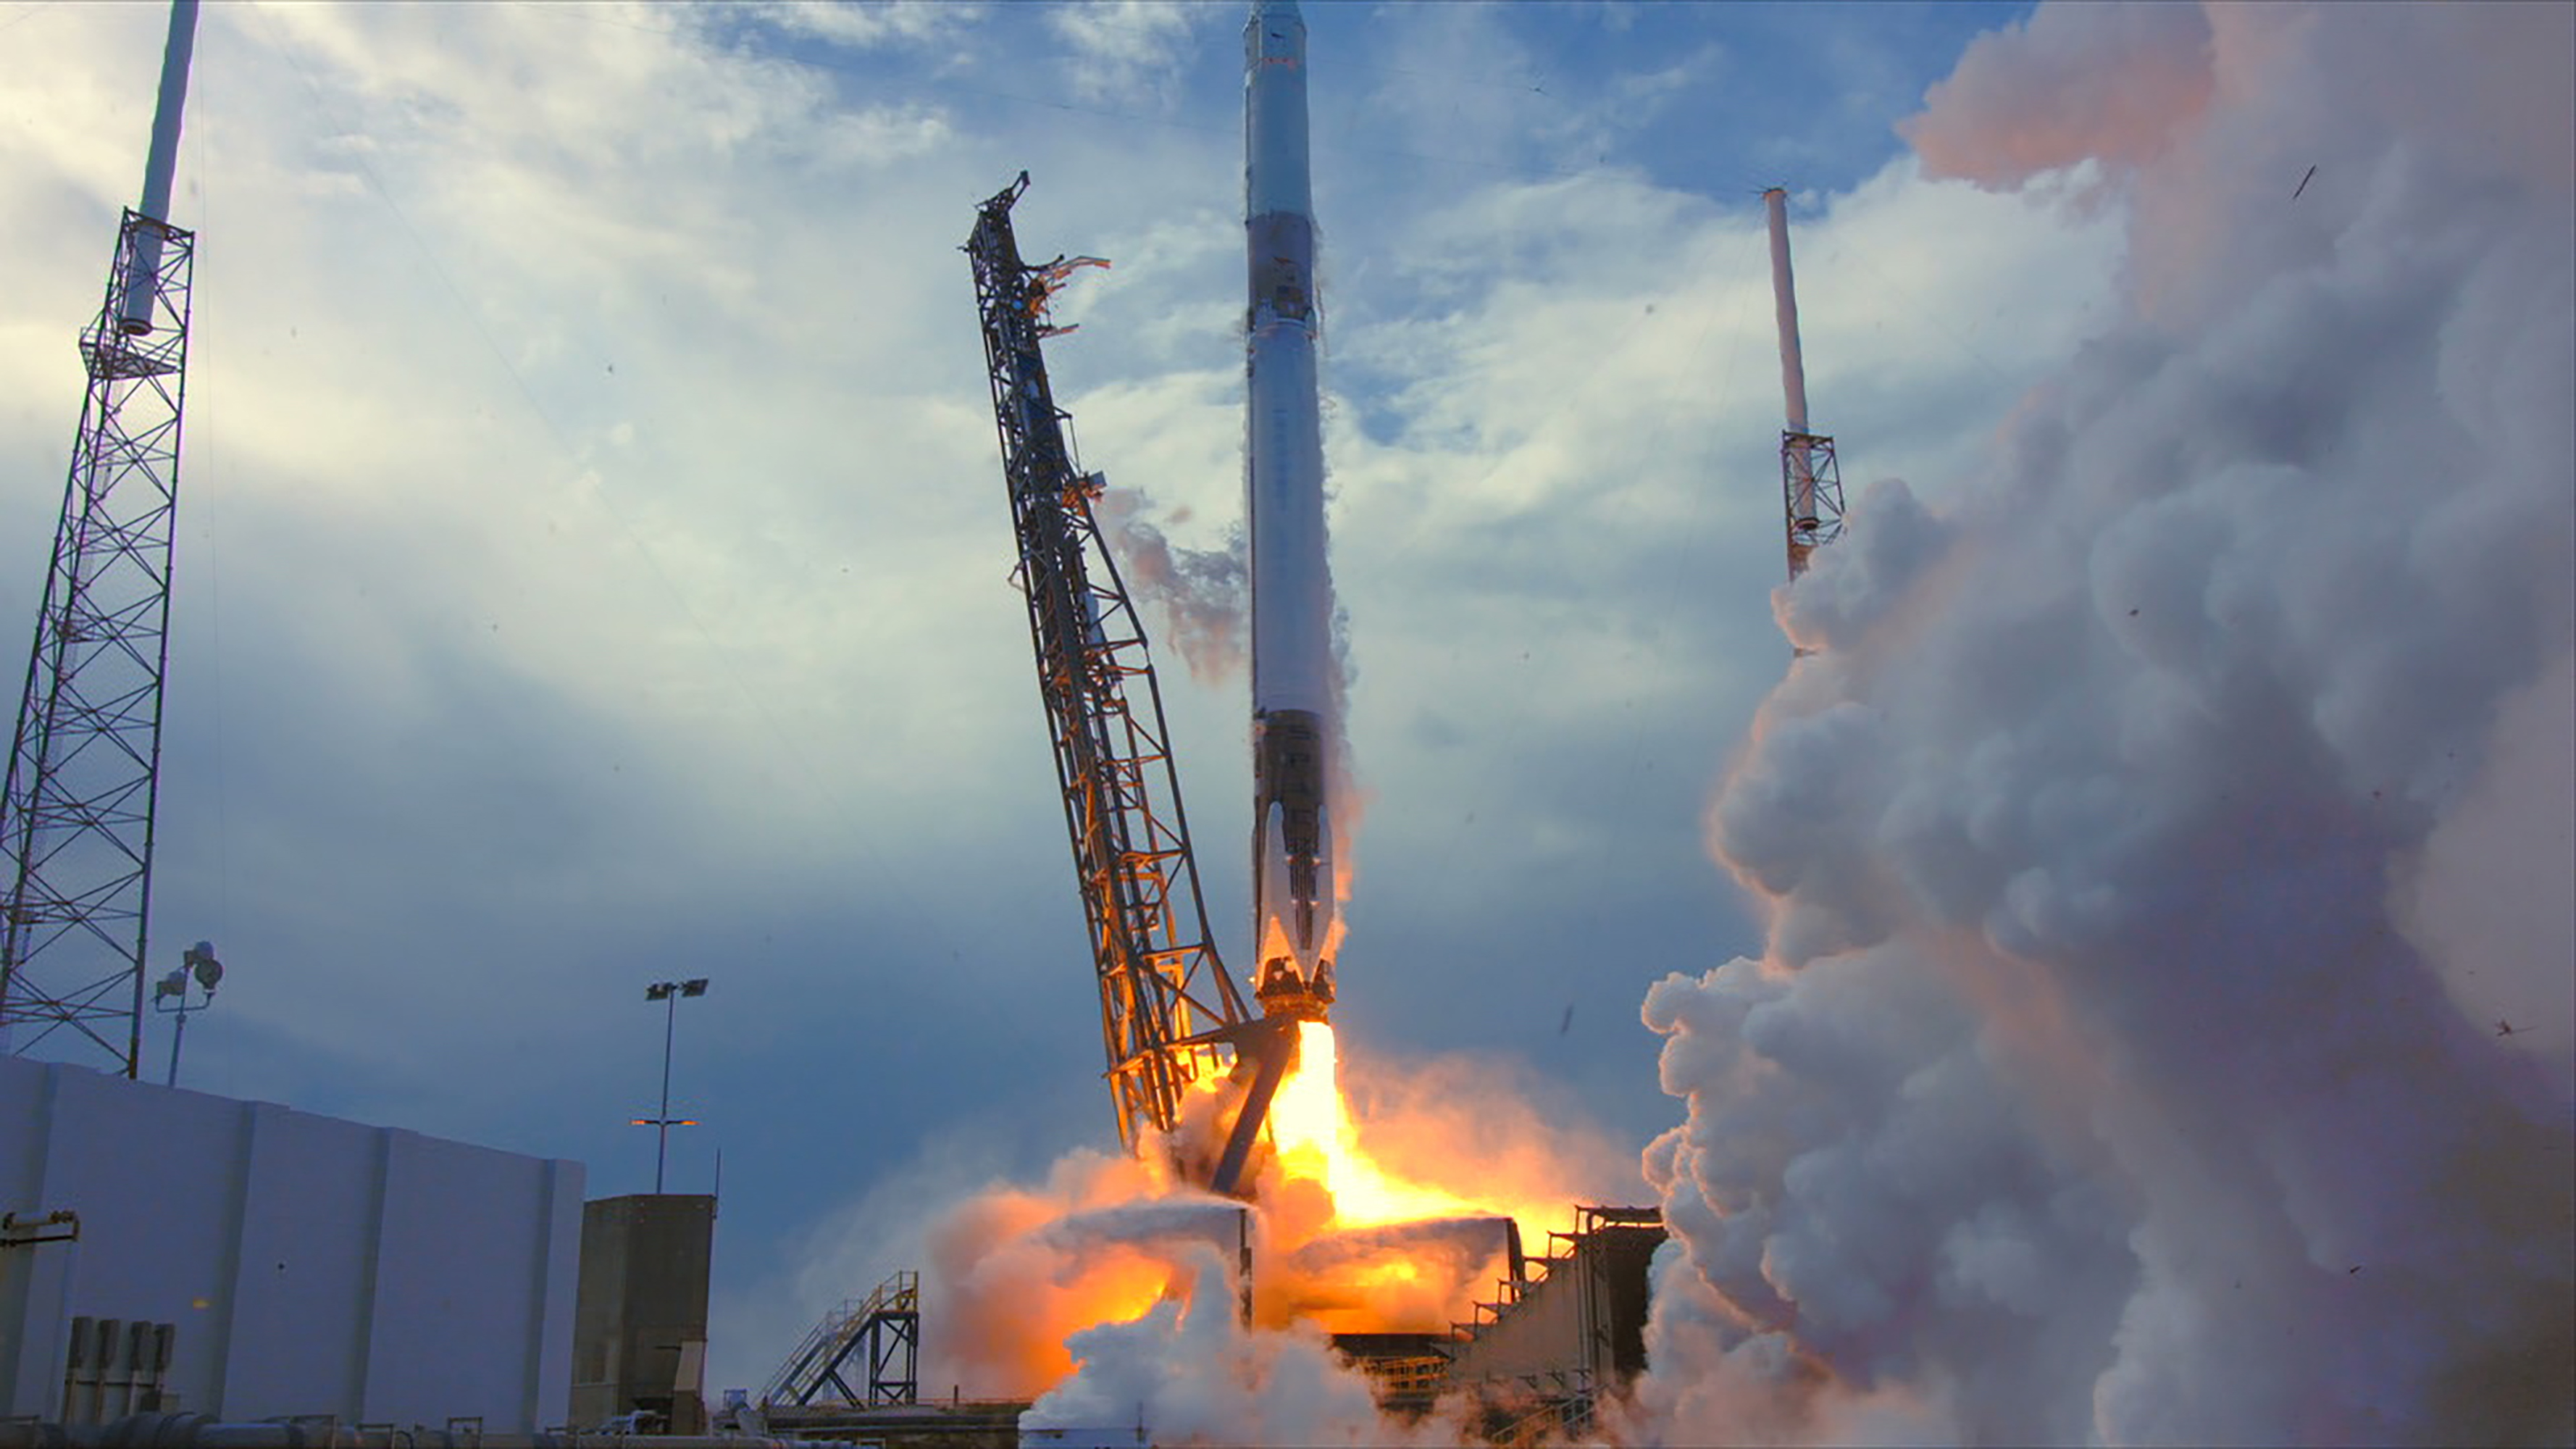 spacex_crs-14_launch_co.jpg